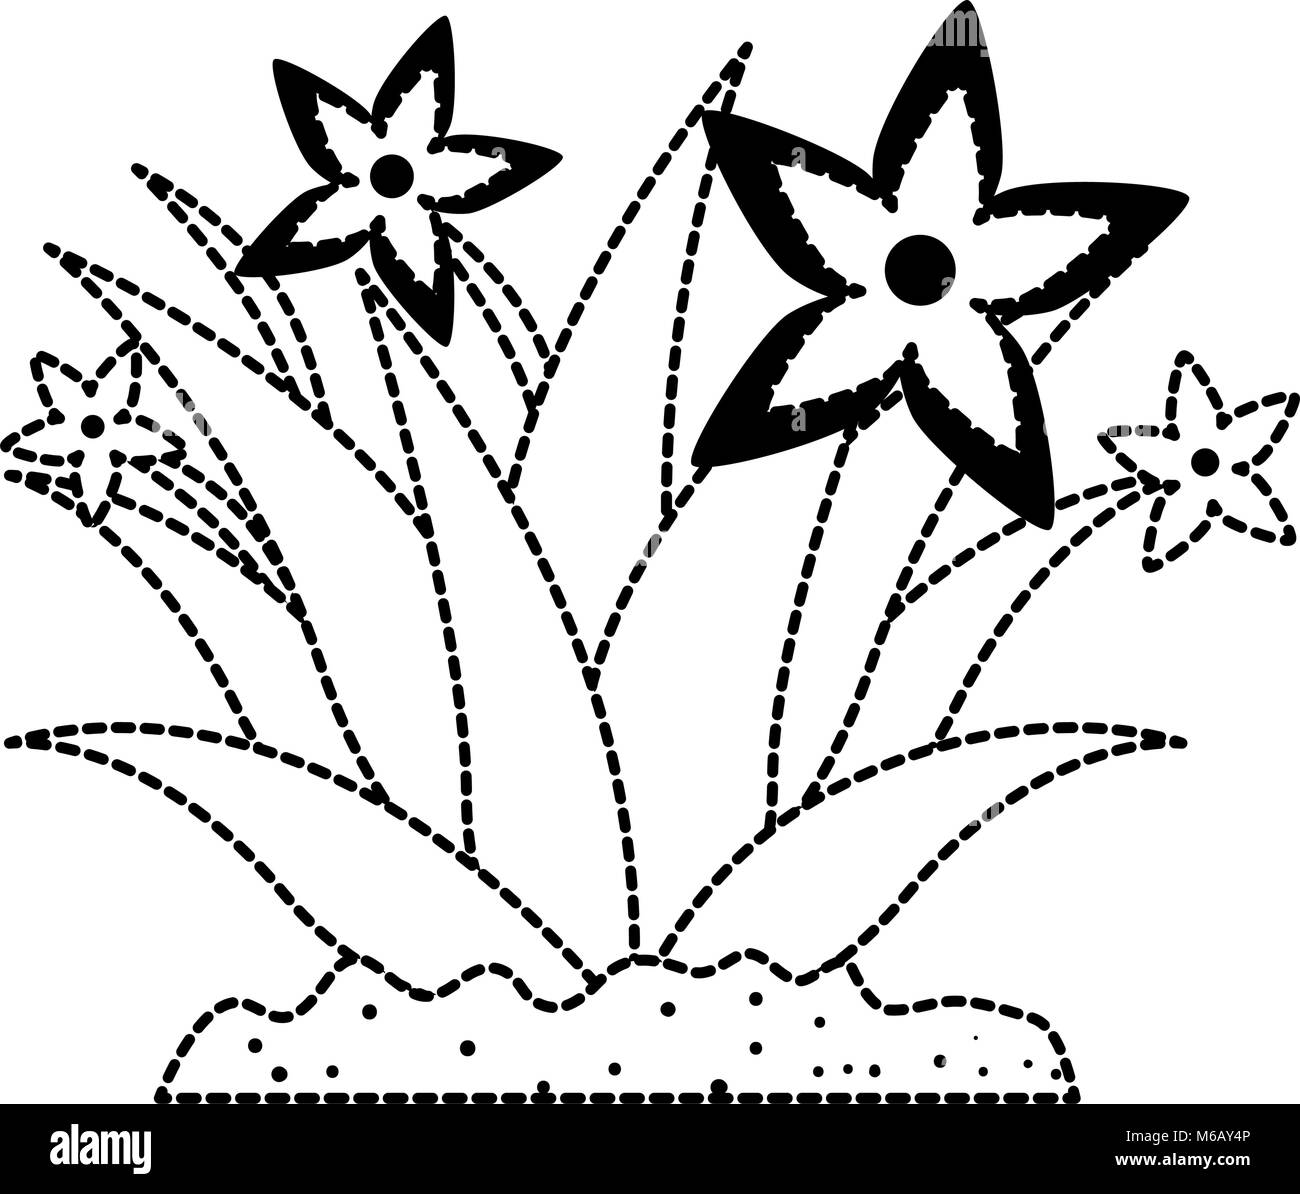 garden flower cultivated icon - Stock Image